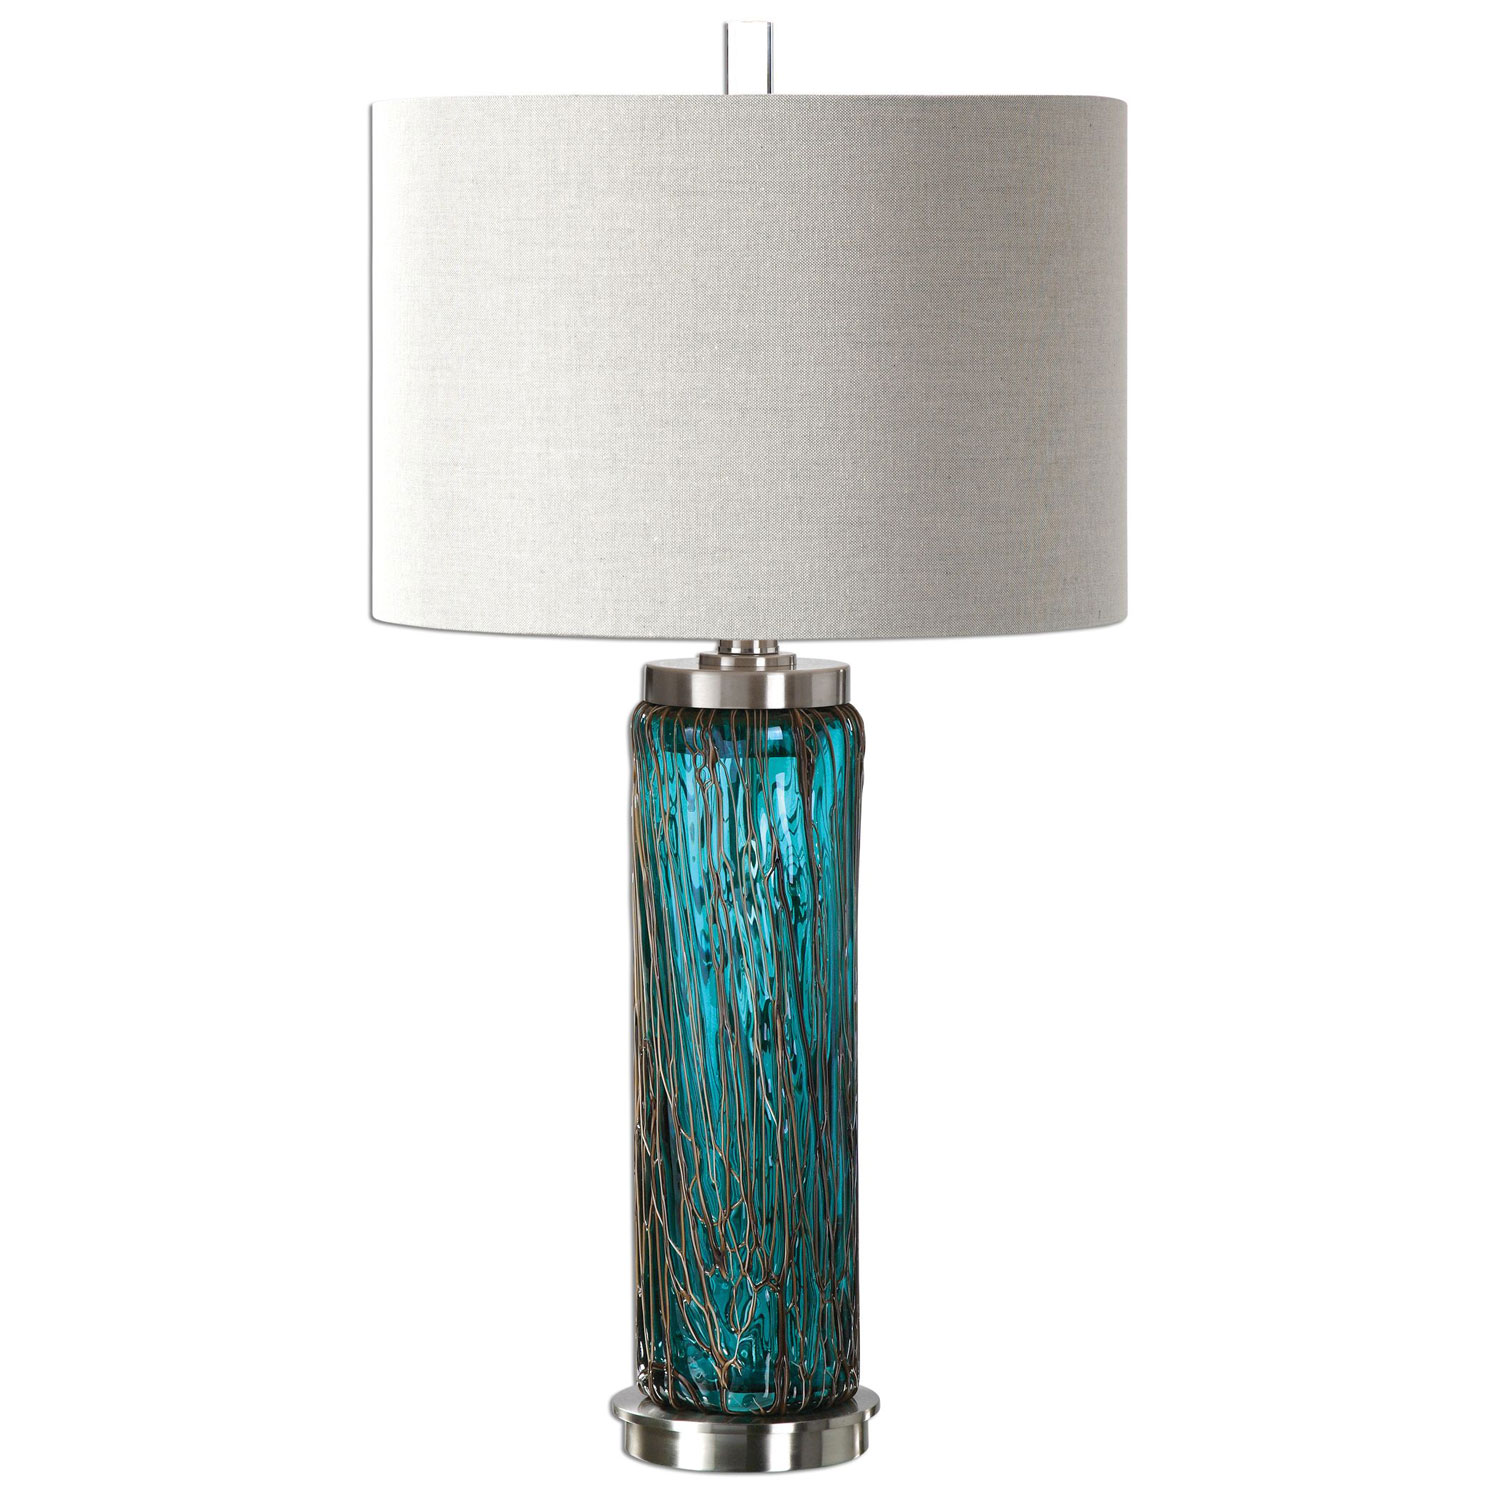 uttermost almanzora blue one light glass table lamp bellacor ceramic accent hover zoom temple jar lamps black side with drawer tiffany kitchen knobs and pulls small mirrored